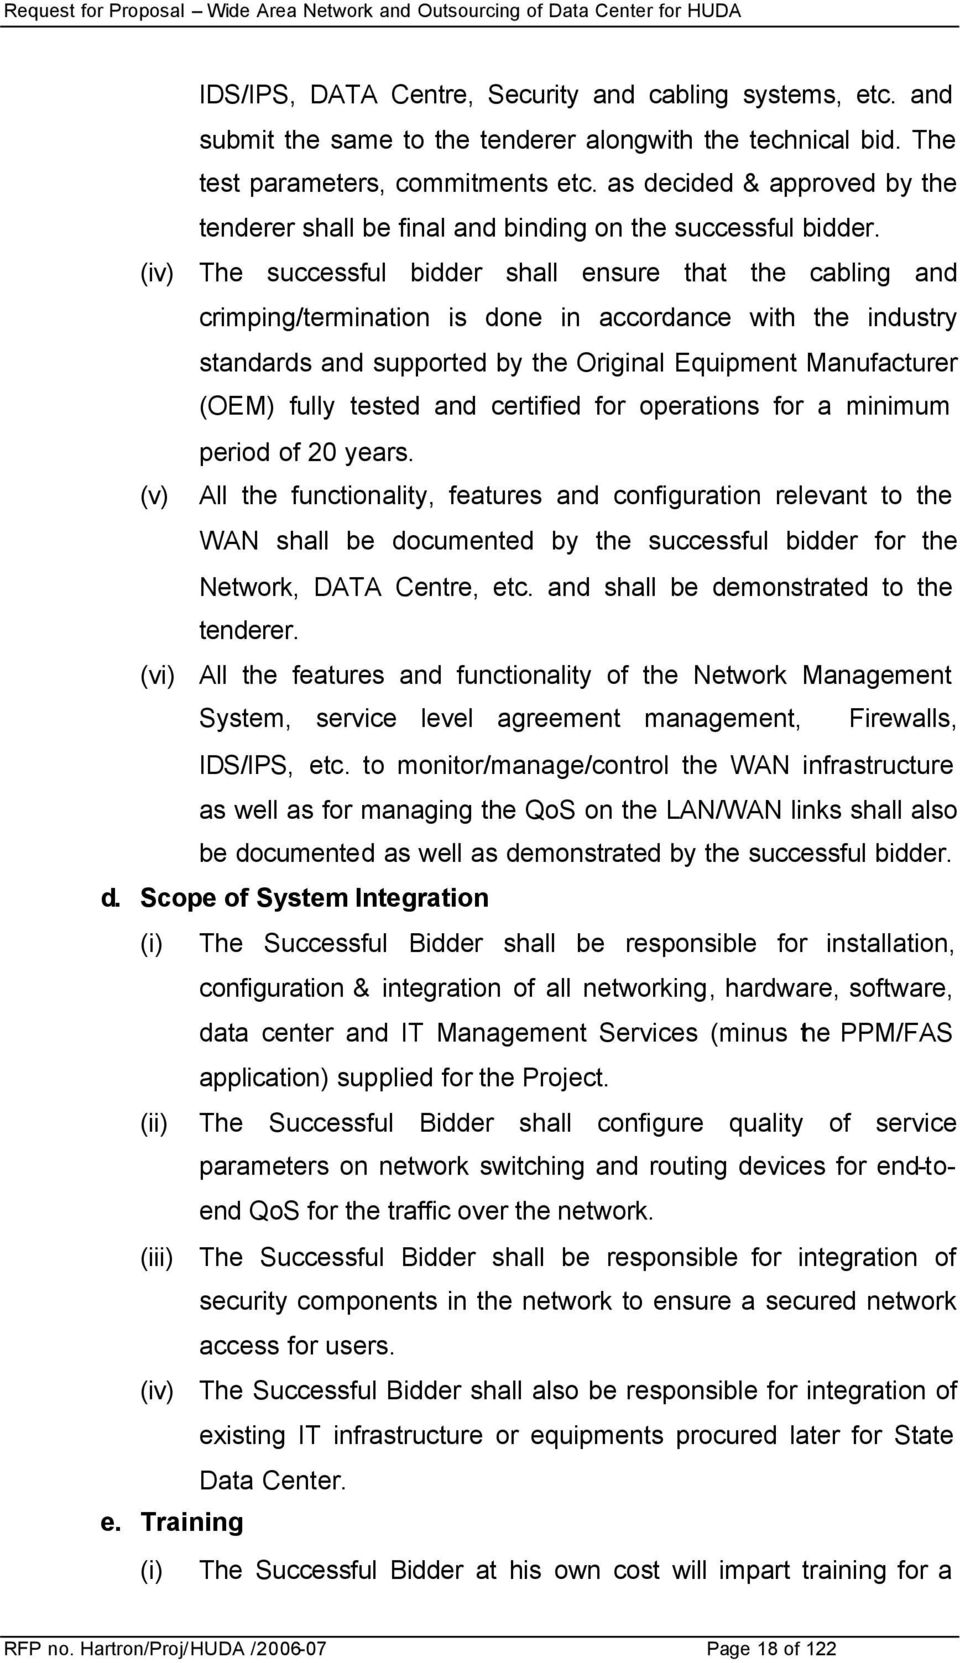 (iv) The successful bidder shall ensure that the cabling and crimping/termination is done in accordance with the industry standards and supported by the Original Equipment Manufacturer (OEM) fully